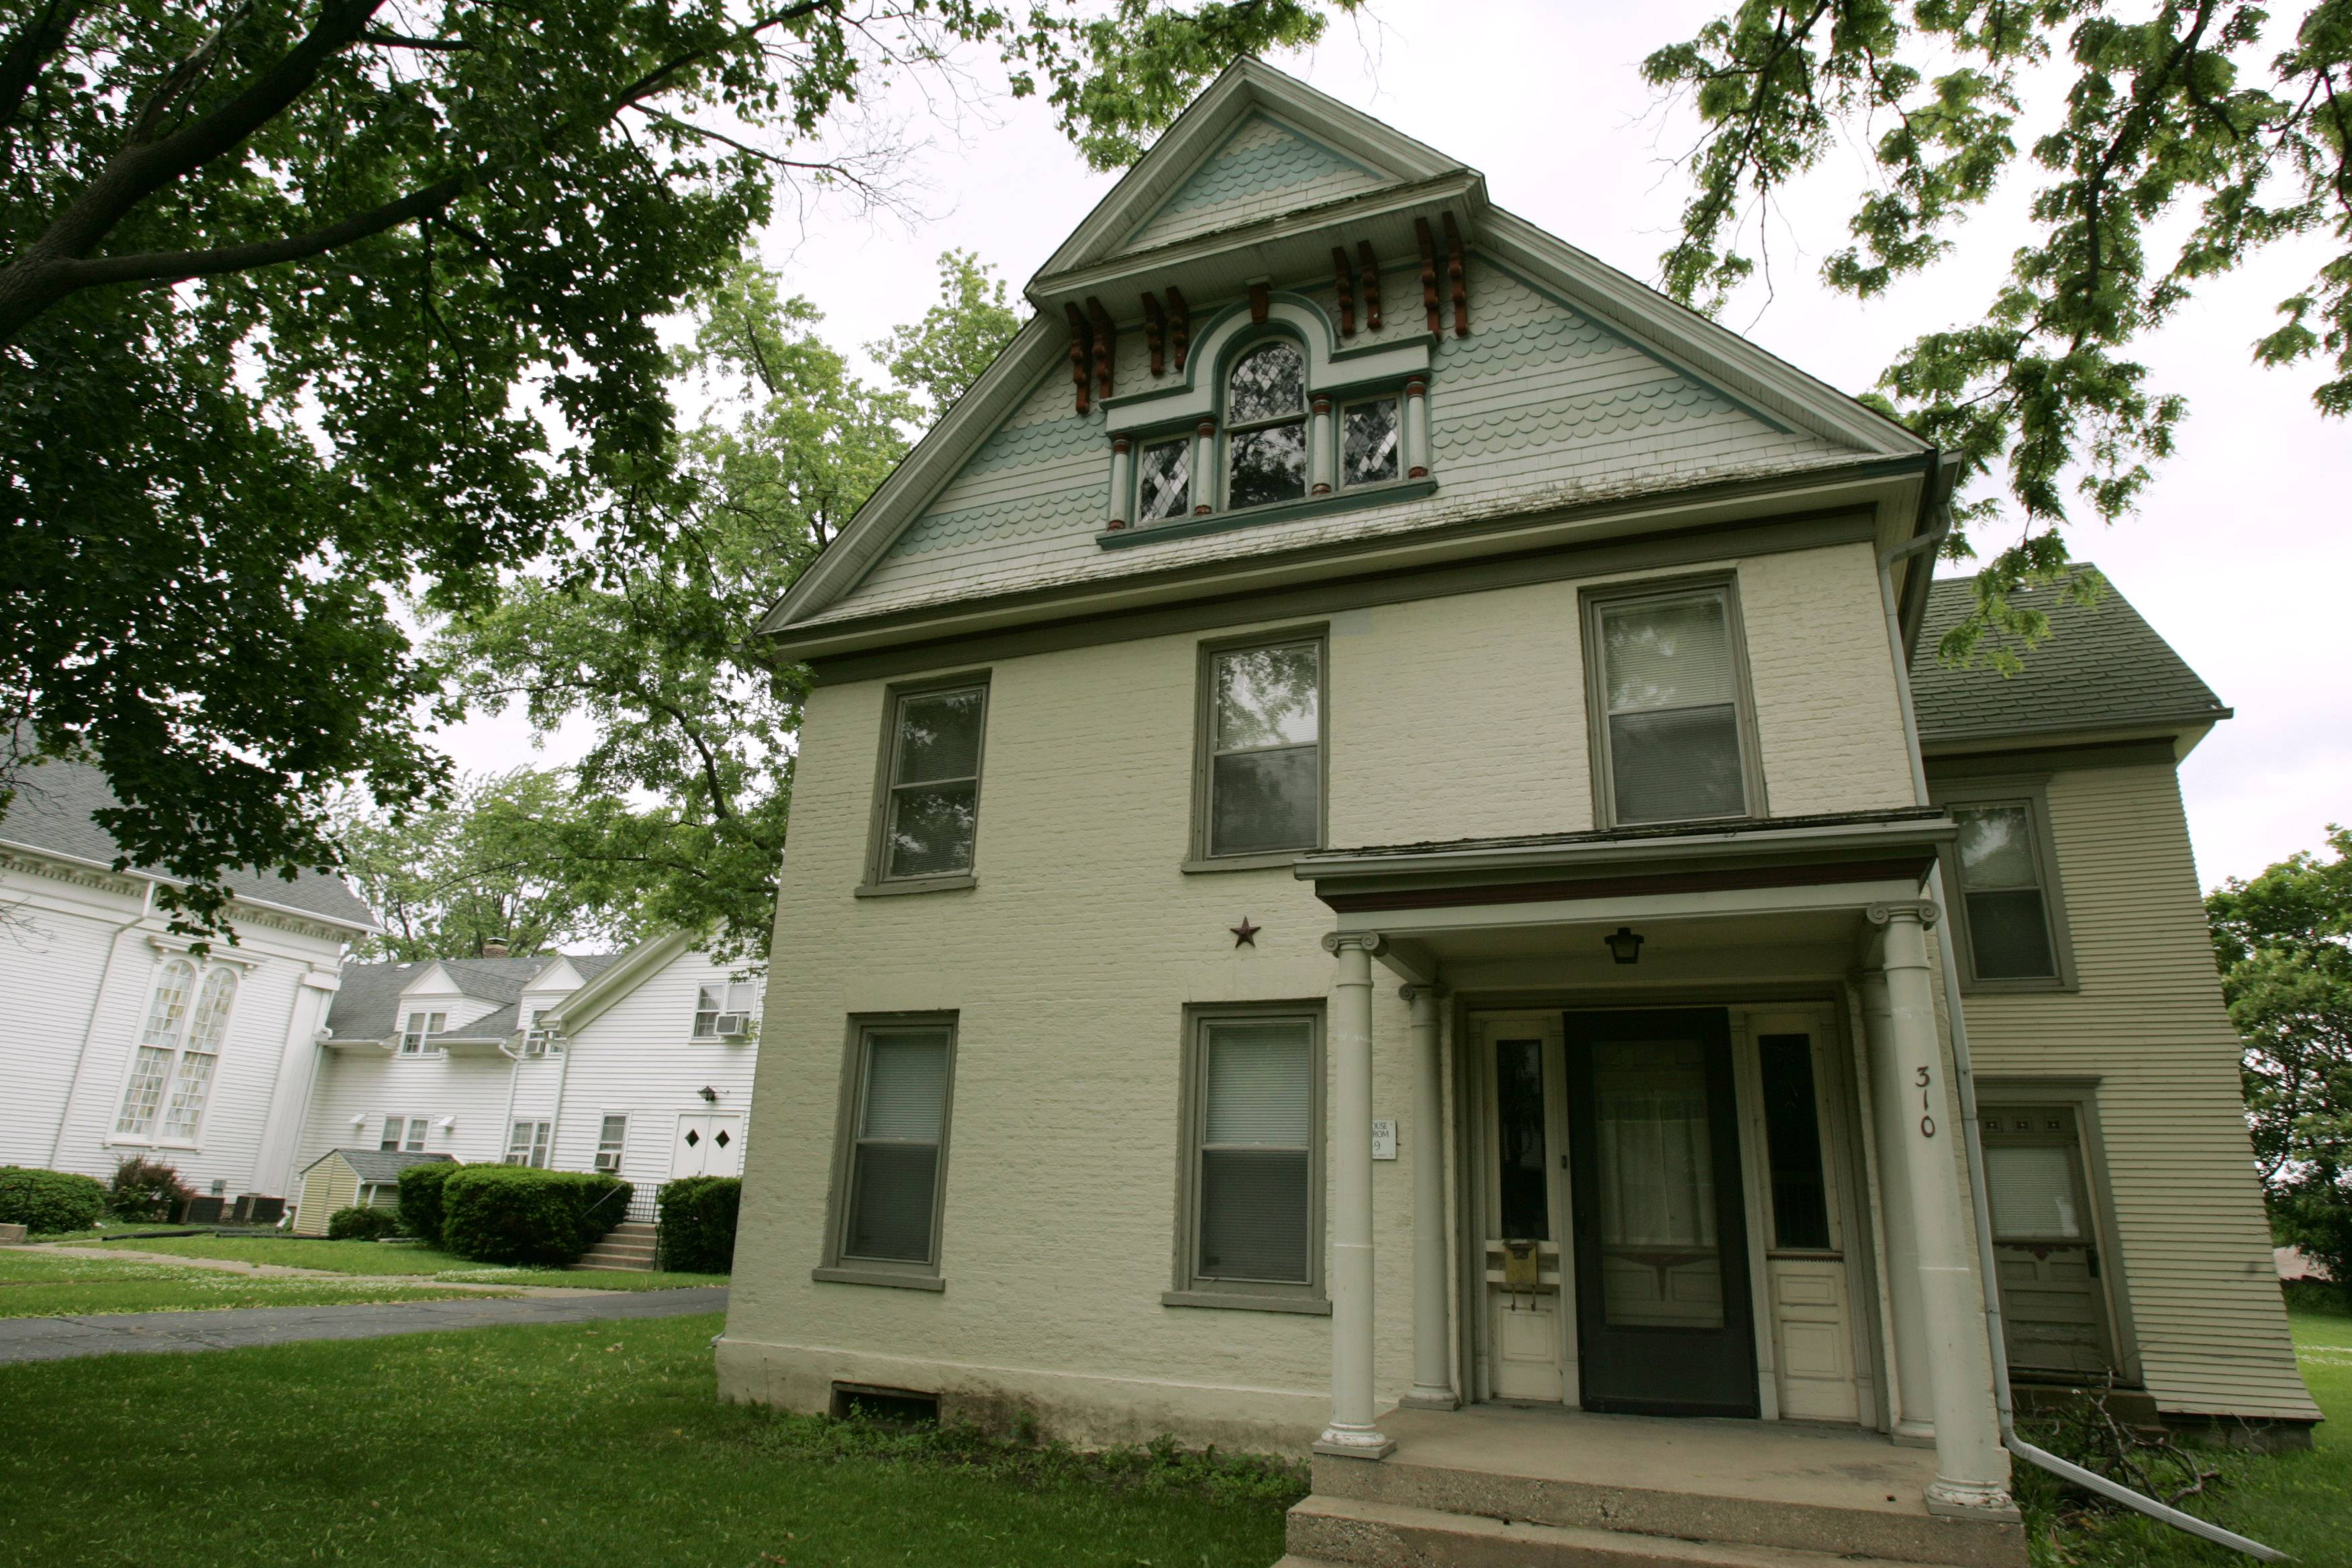 West Dundee officials will attempt to acquire a church's historic but decaying parsonage at 310 W. Main St. in hopes of preserving the 168-year-old structure.